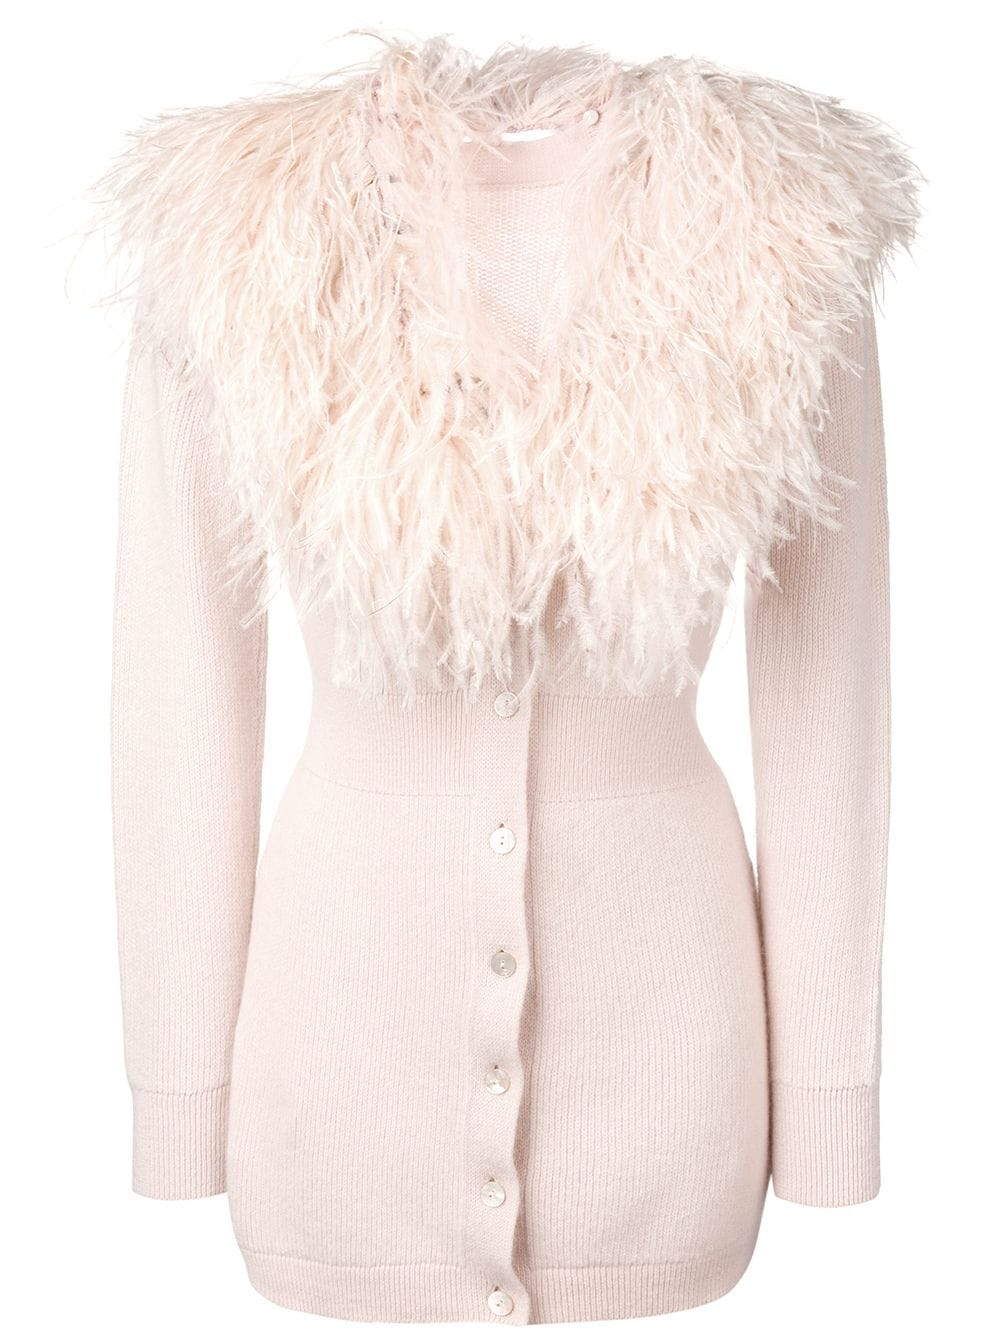 2. Blumarine Ostrich Feather Cardigan $2,080 from www.farfetch.com